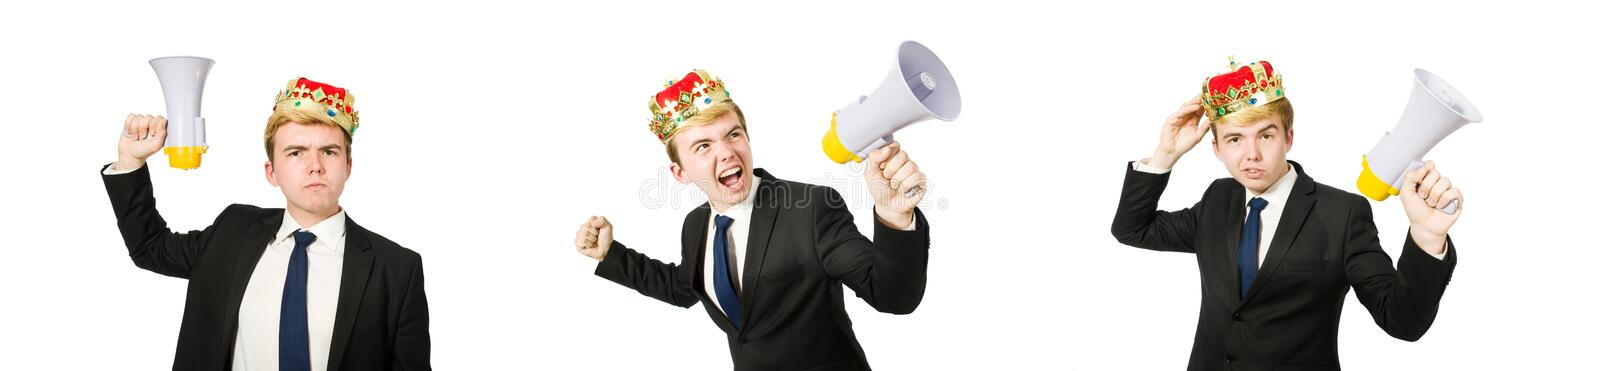 Man with crown and megaphone isolated on white stock photo